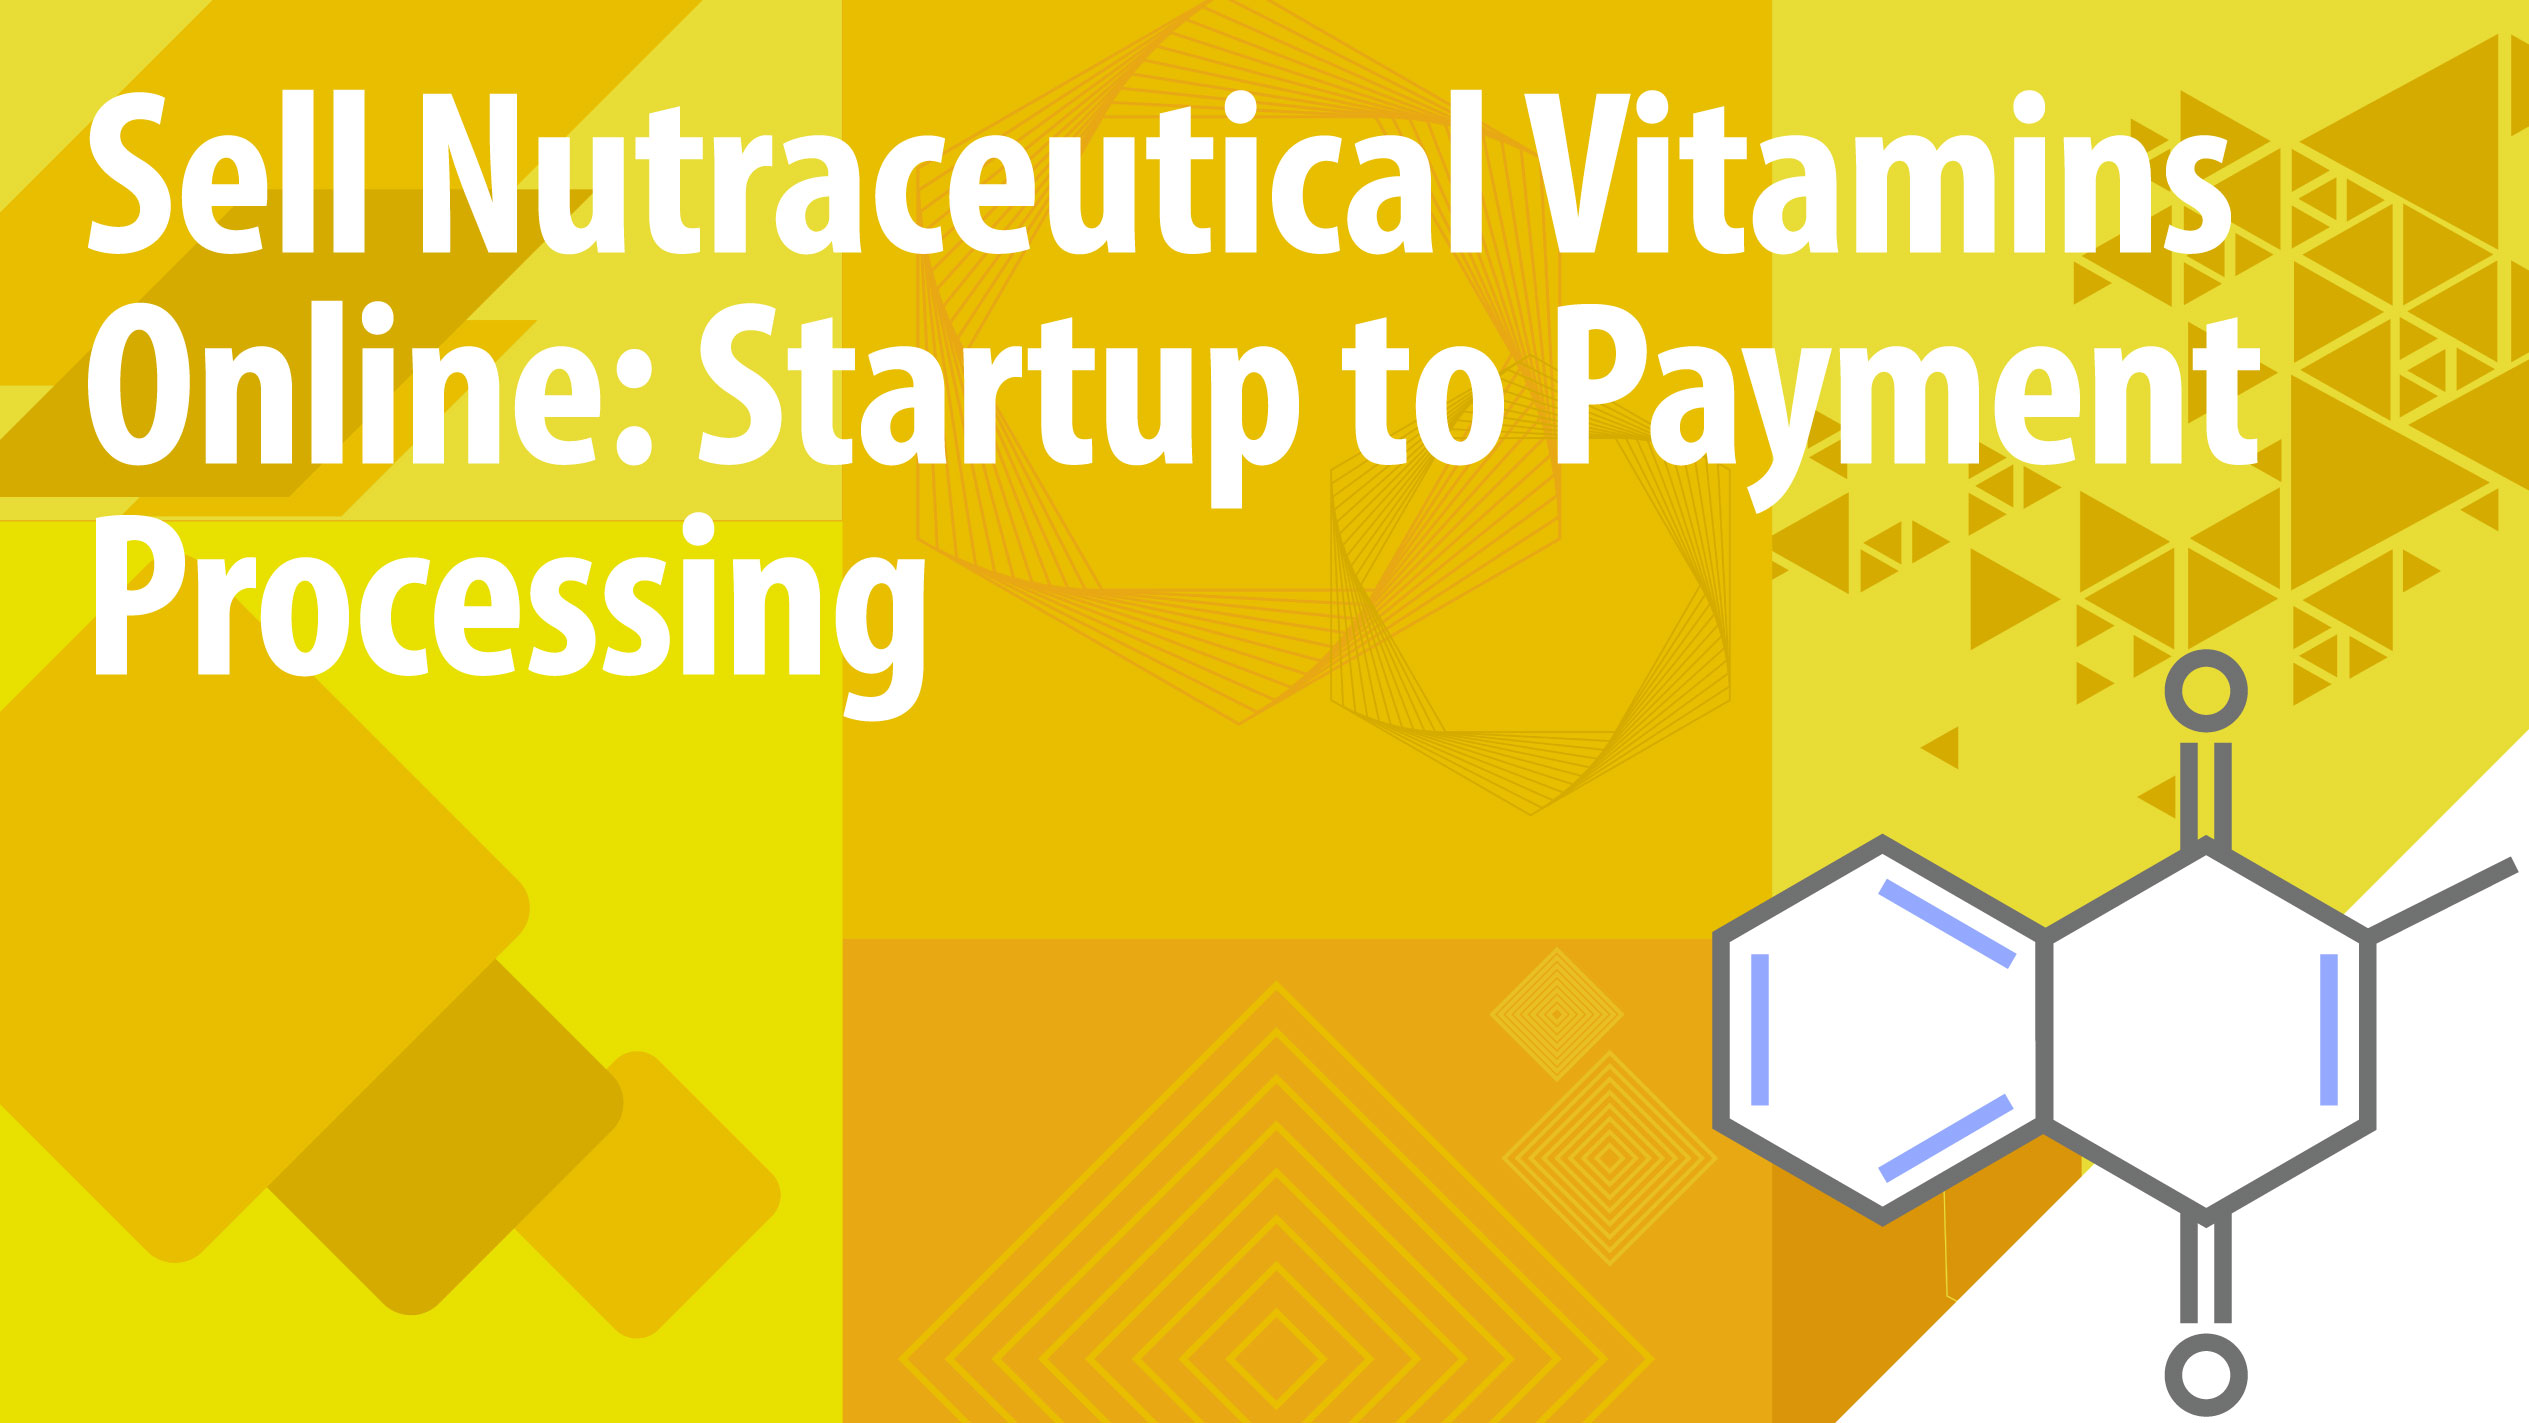 Sell Nutraceutical Multivitamins Online: Startup to Payment Processing